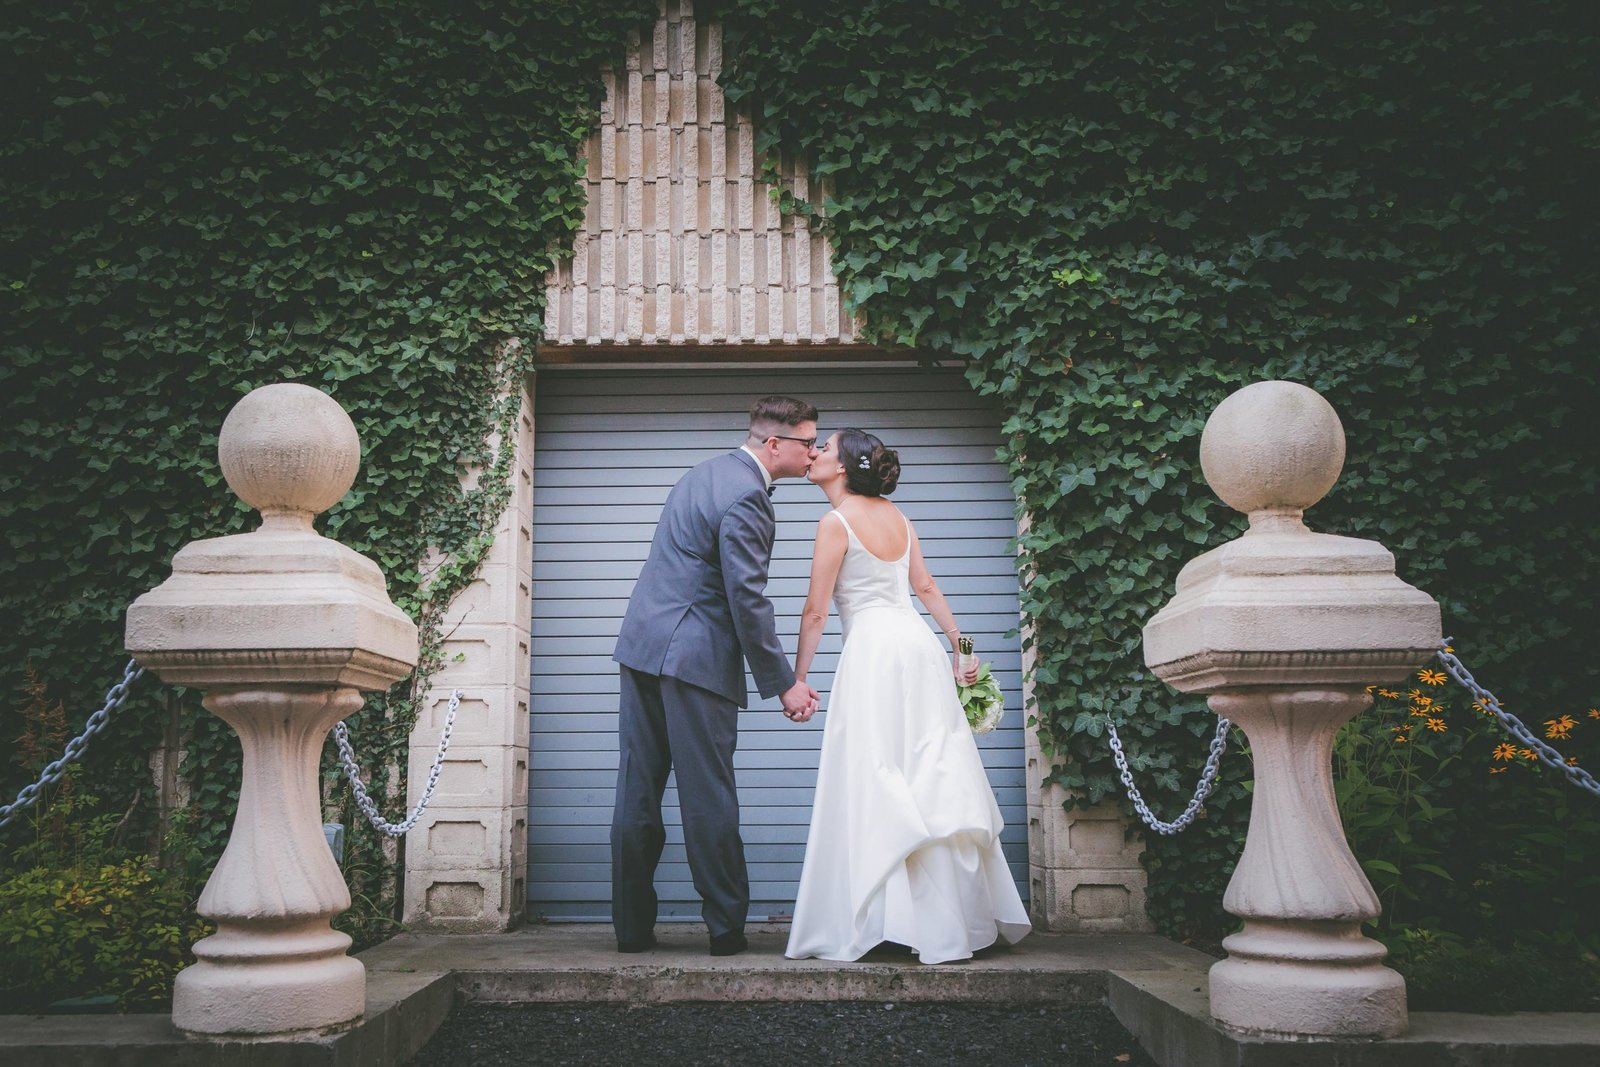 Connecticut bride and groom kiss with columns and ivy surrounding them.